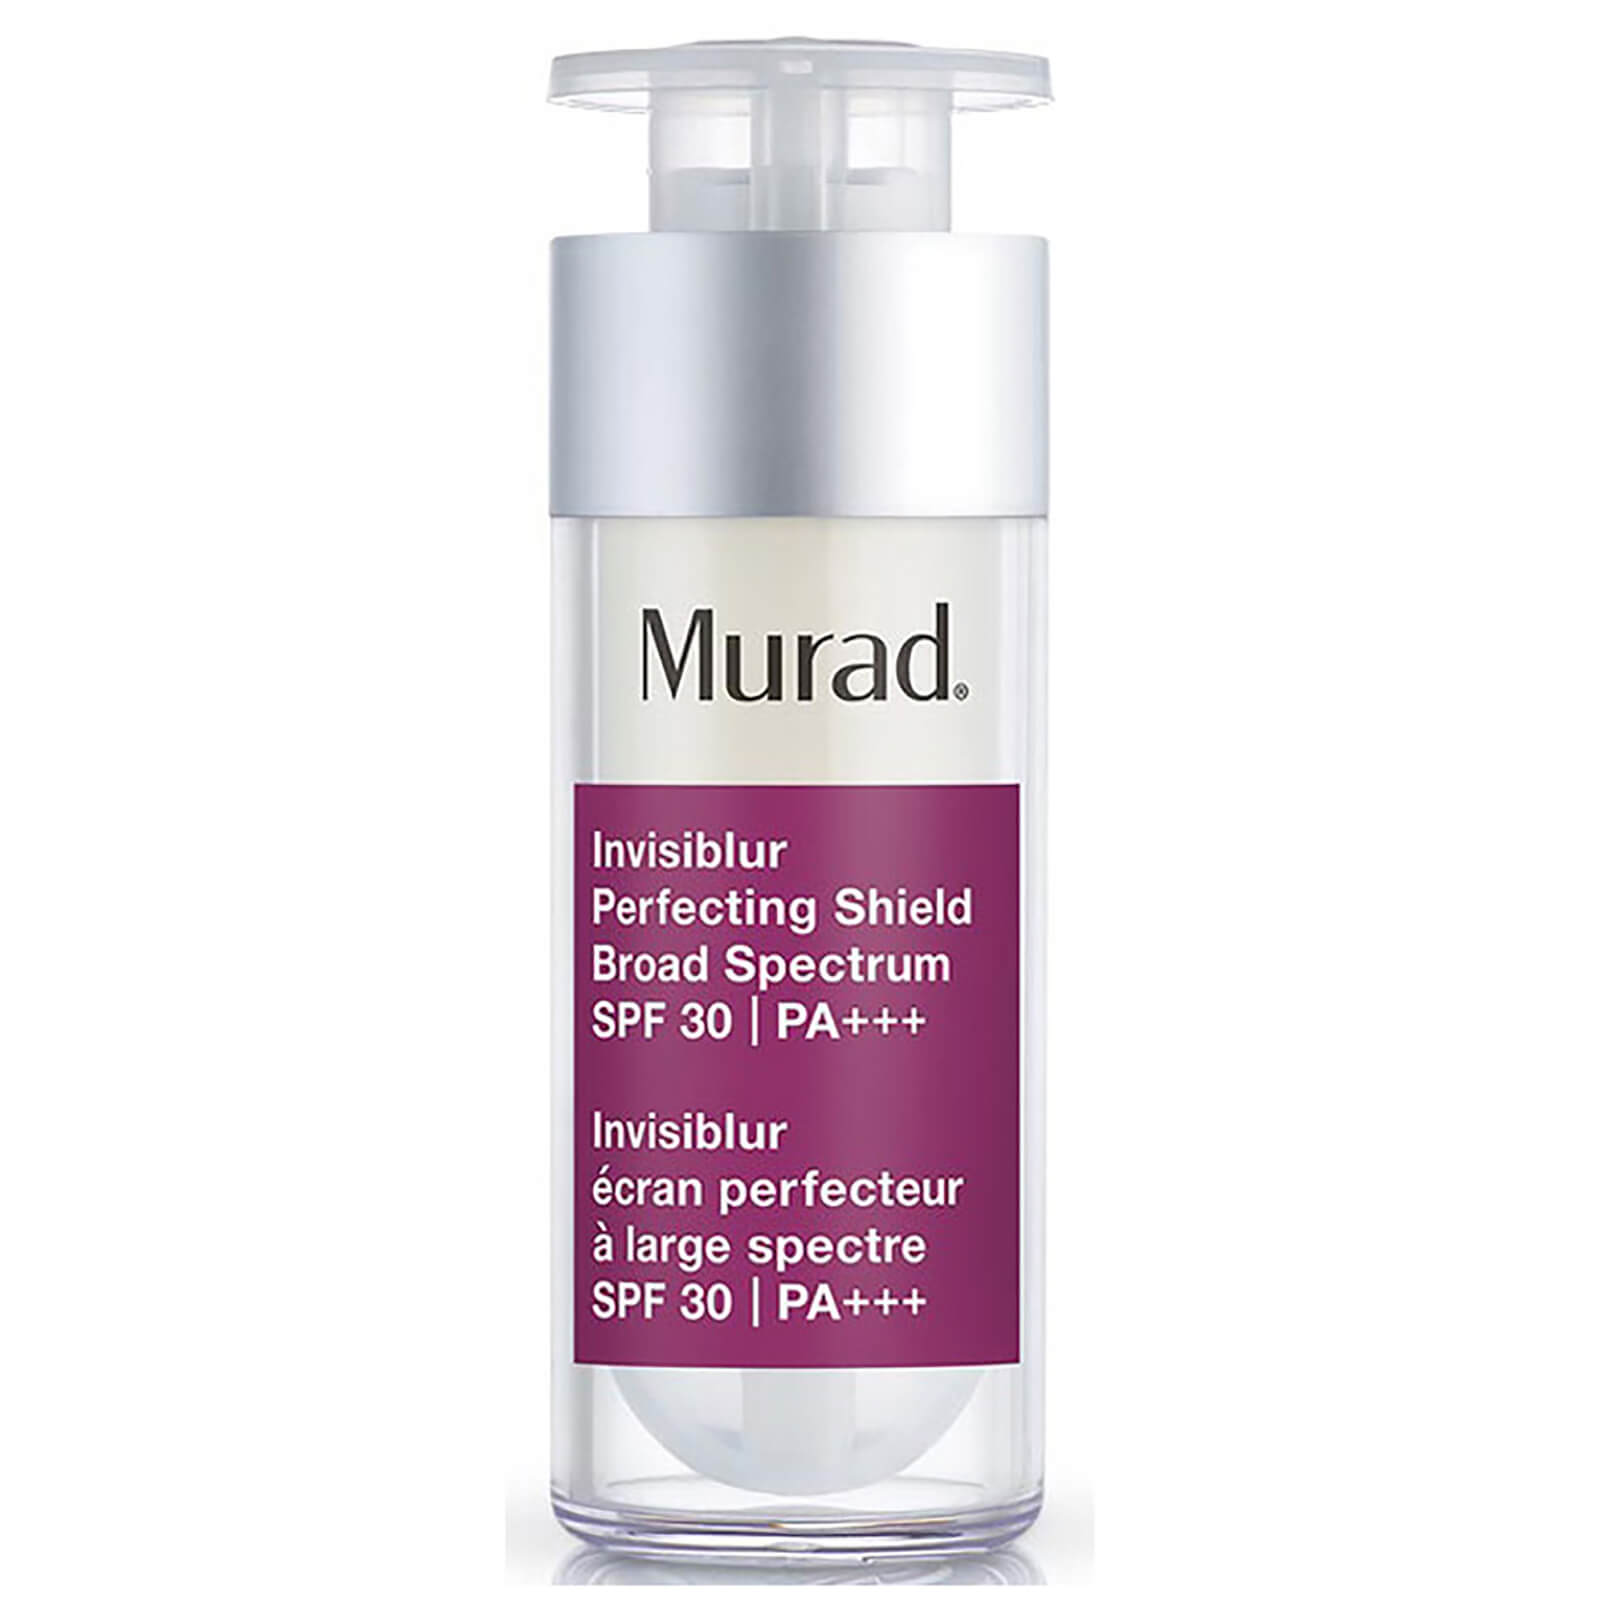 Murad Hydration Invisiblur Perfecting Shield SPF 30